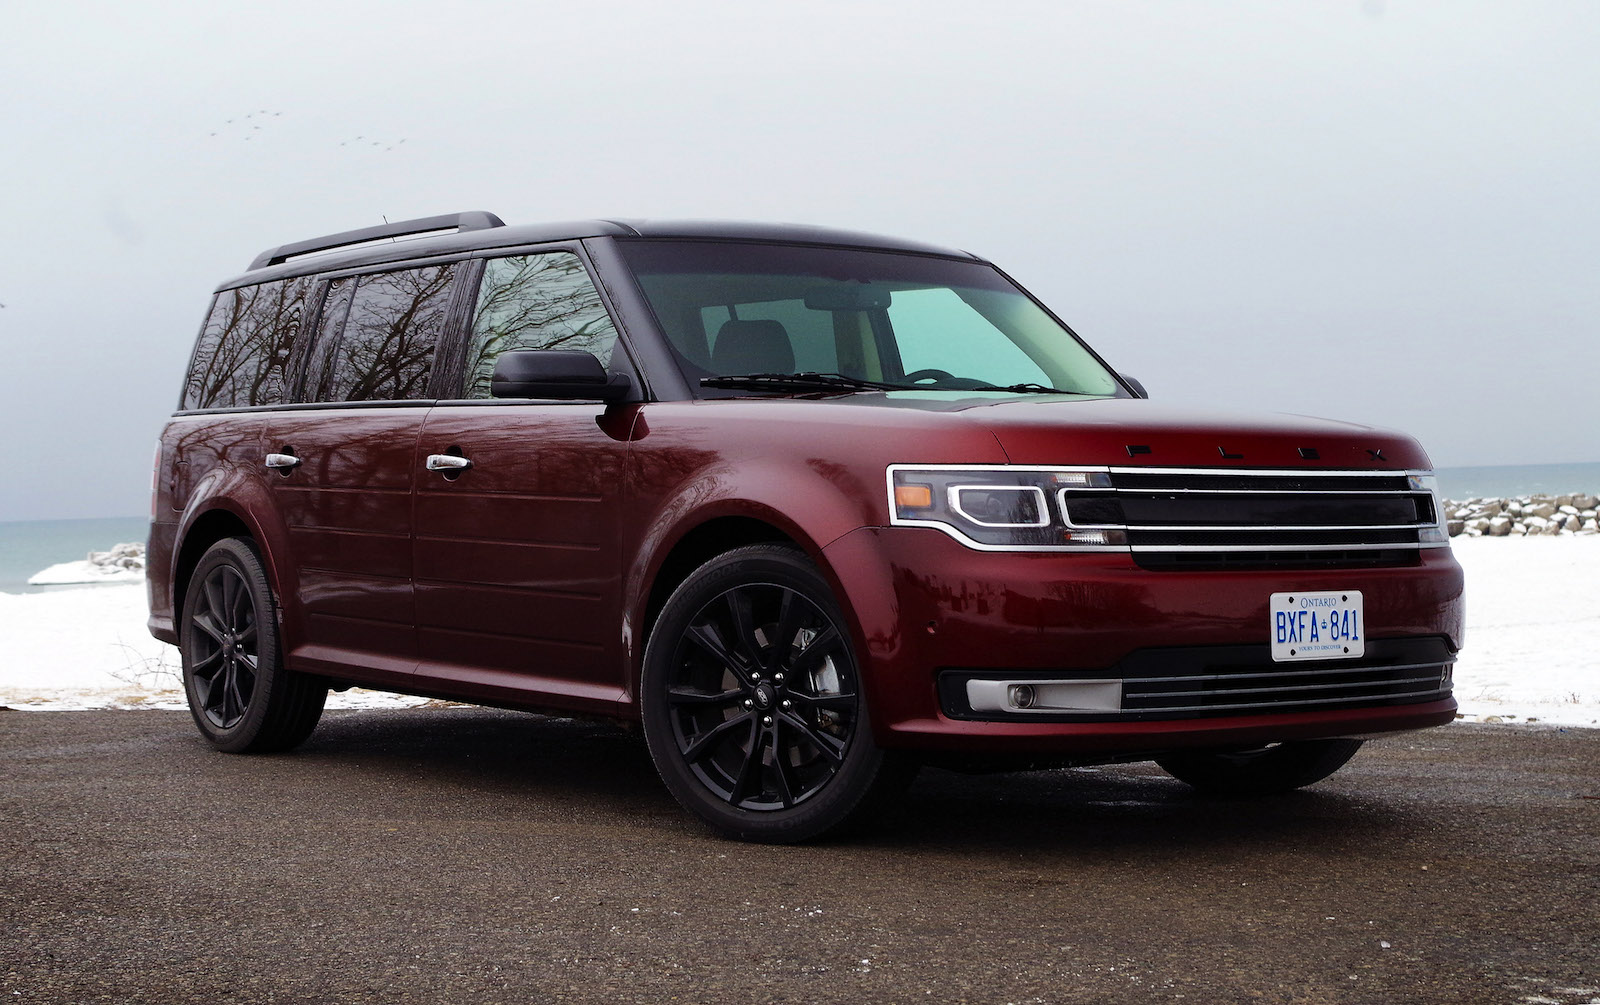 2016 Dodge Ram Reviews >> Review: 2016 Ford Flex | Canadian Auto Review